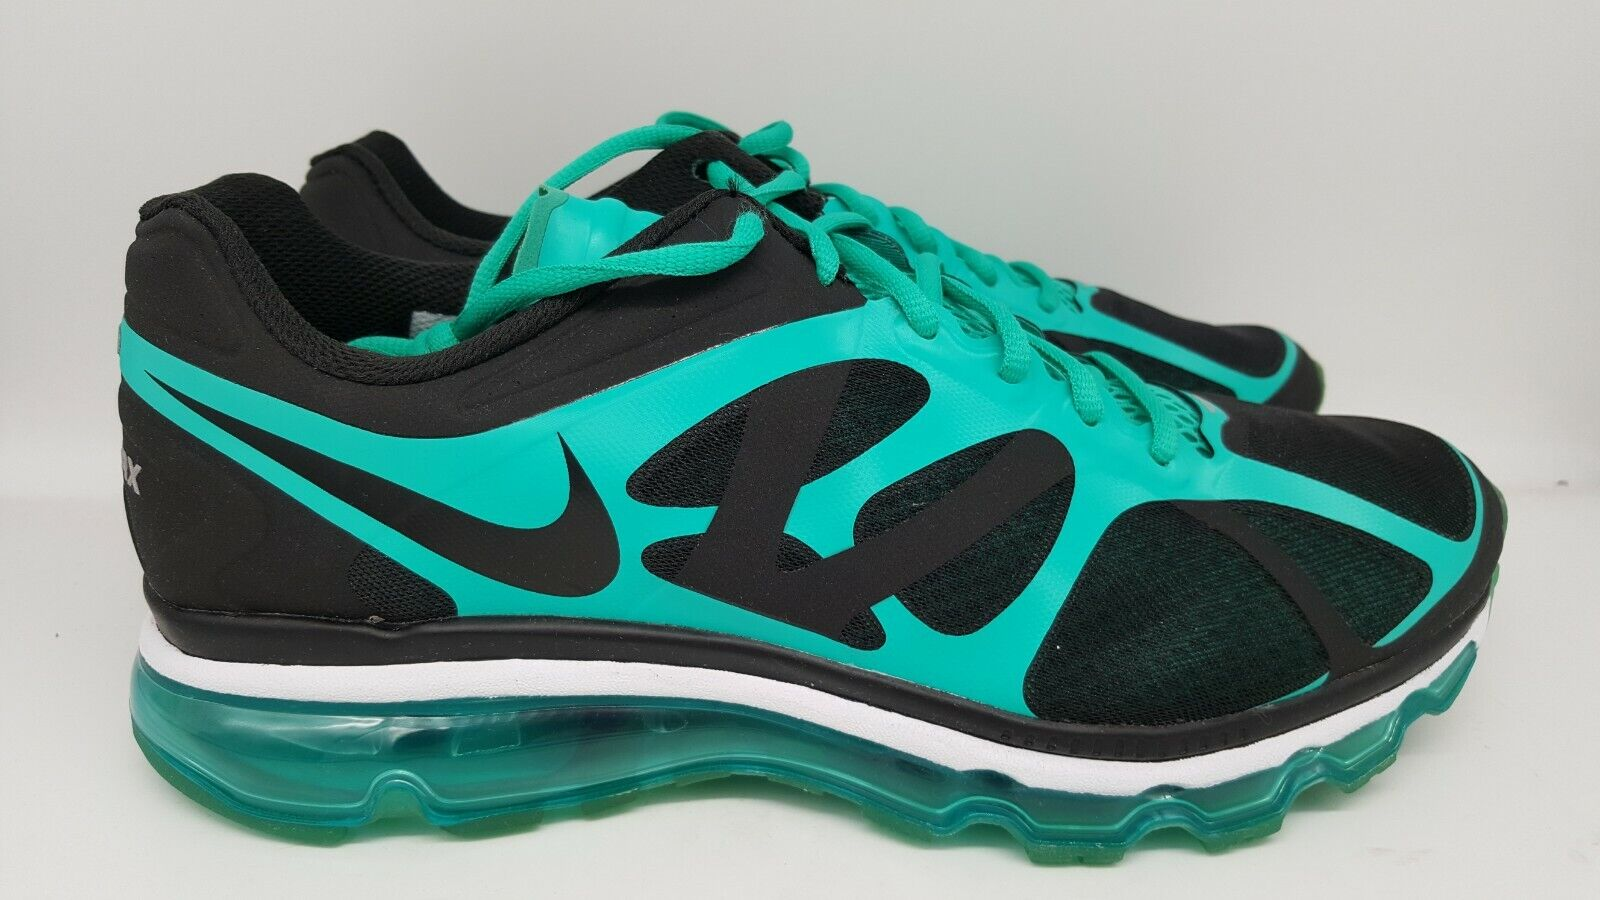 AIR MAX + 2012 487982 -004 Hommes Taille 10.5 - 12